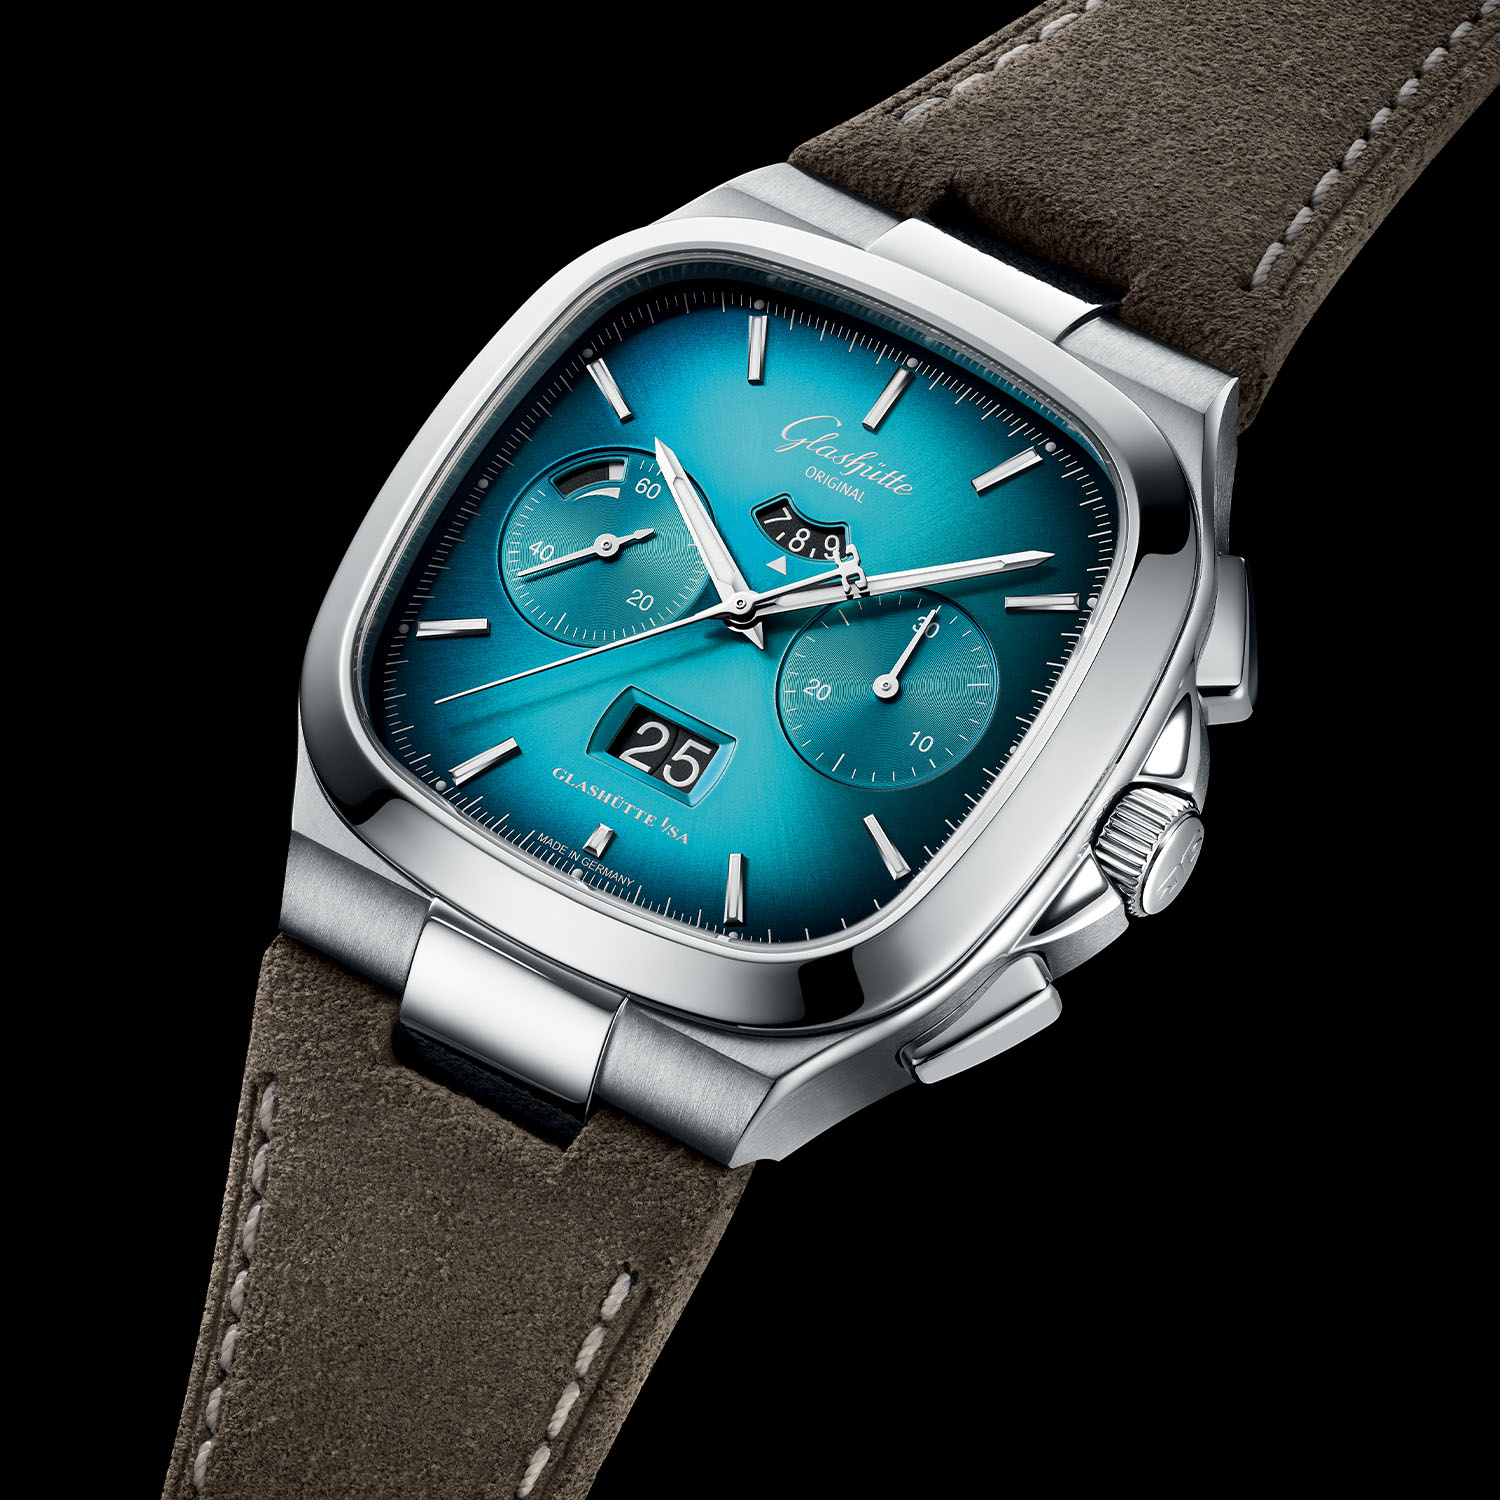 Glashutte Original Seventies Chronograph Panorama Date 2021 Limited Editions bright turquoise gradient - 2